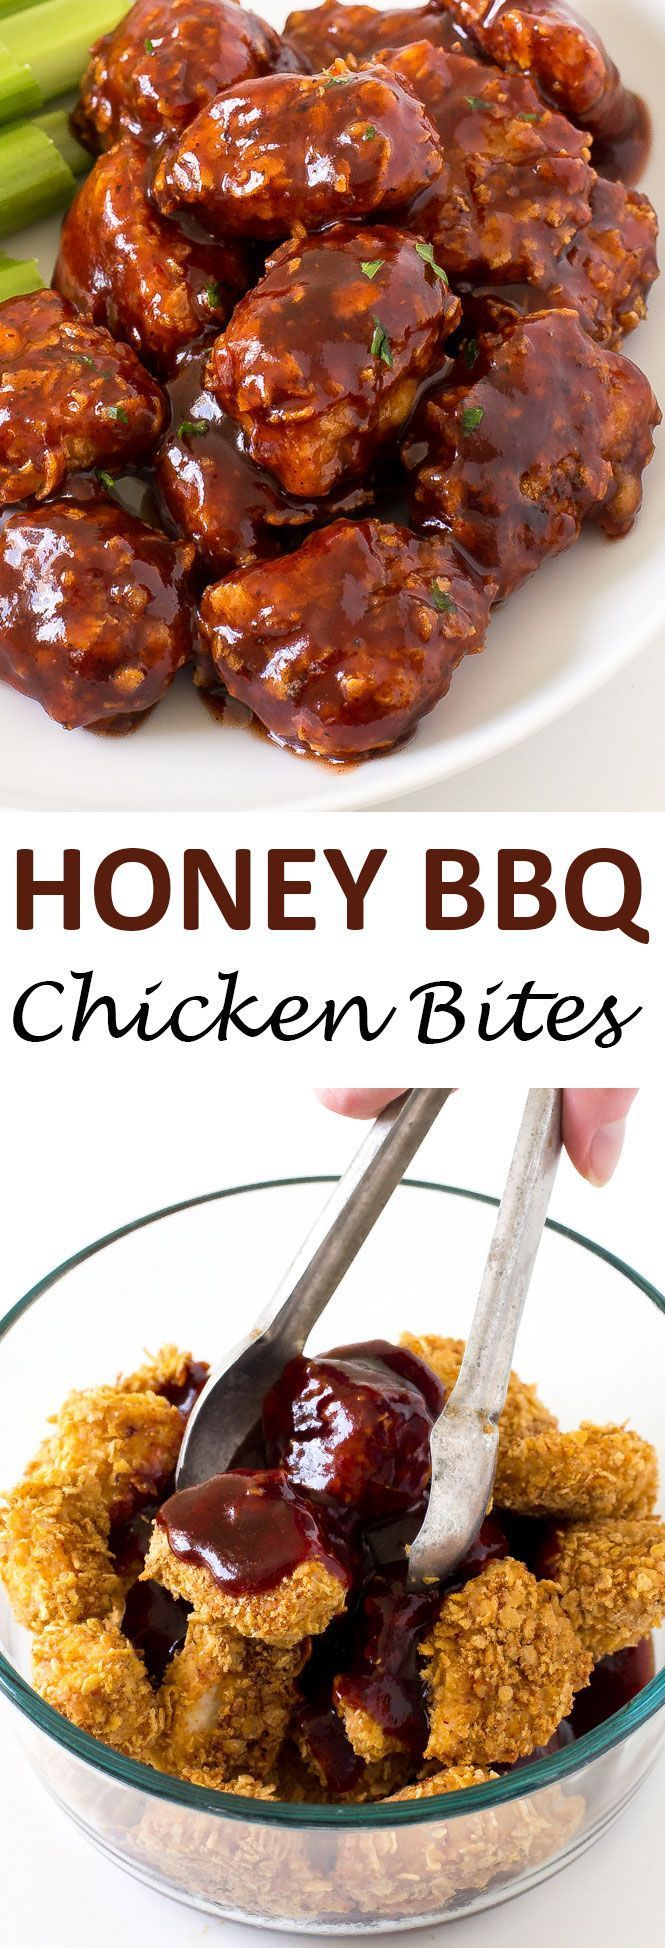 Baked Honey Barbecue Chicken Bites coated in crunchy cornflakes and tossed with a sweet Honey Barbecue Sauce! Perfect as an appetizer or for dinner!